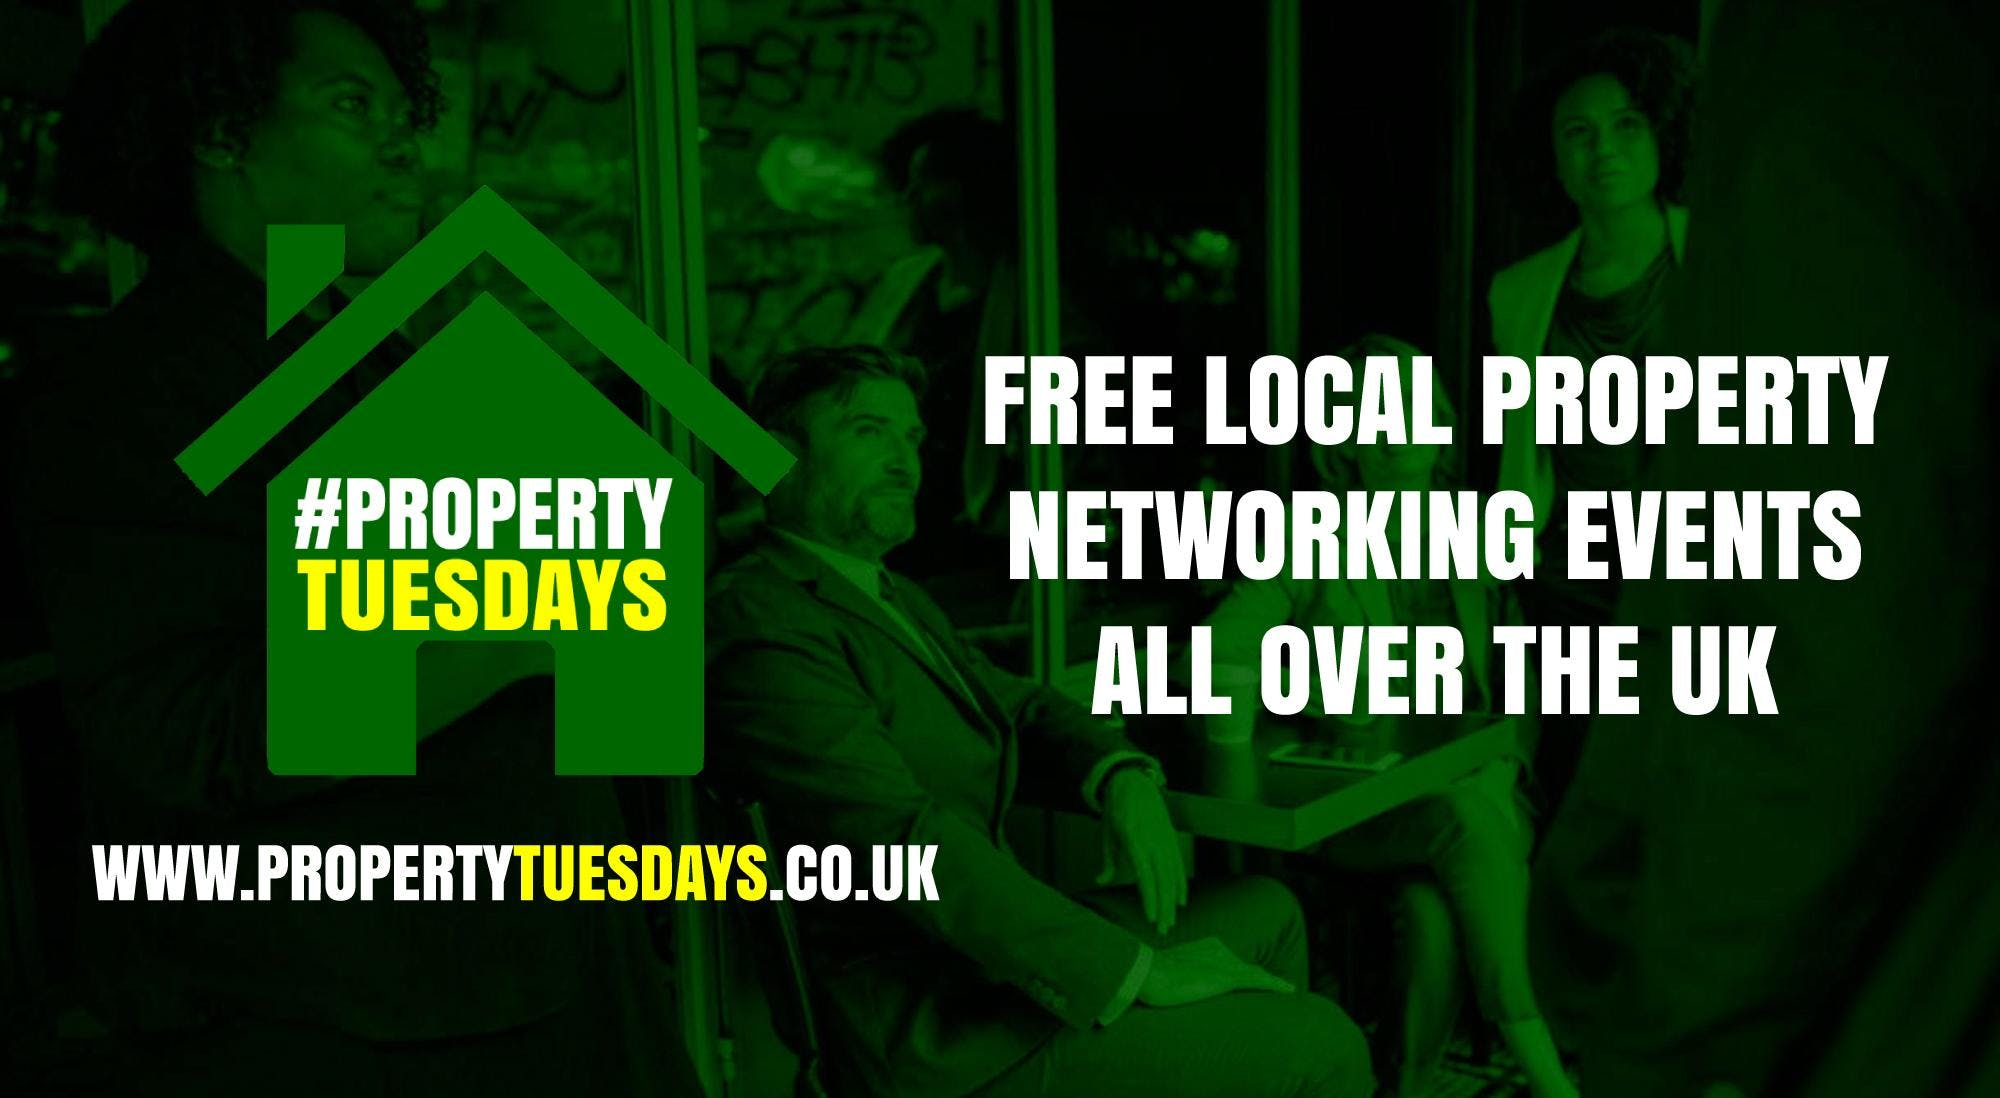 Property Tuesdays! Free property networking event in Clacton-on-Sea